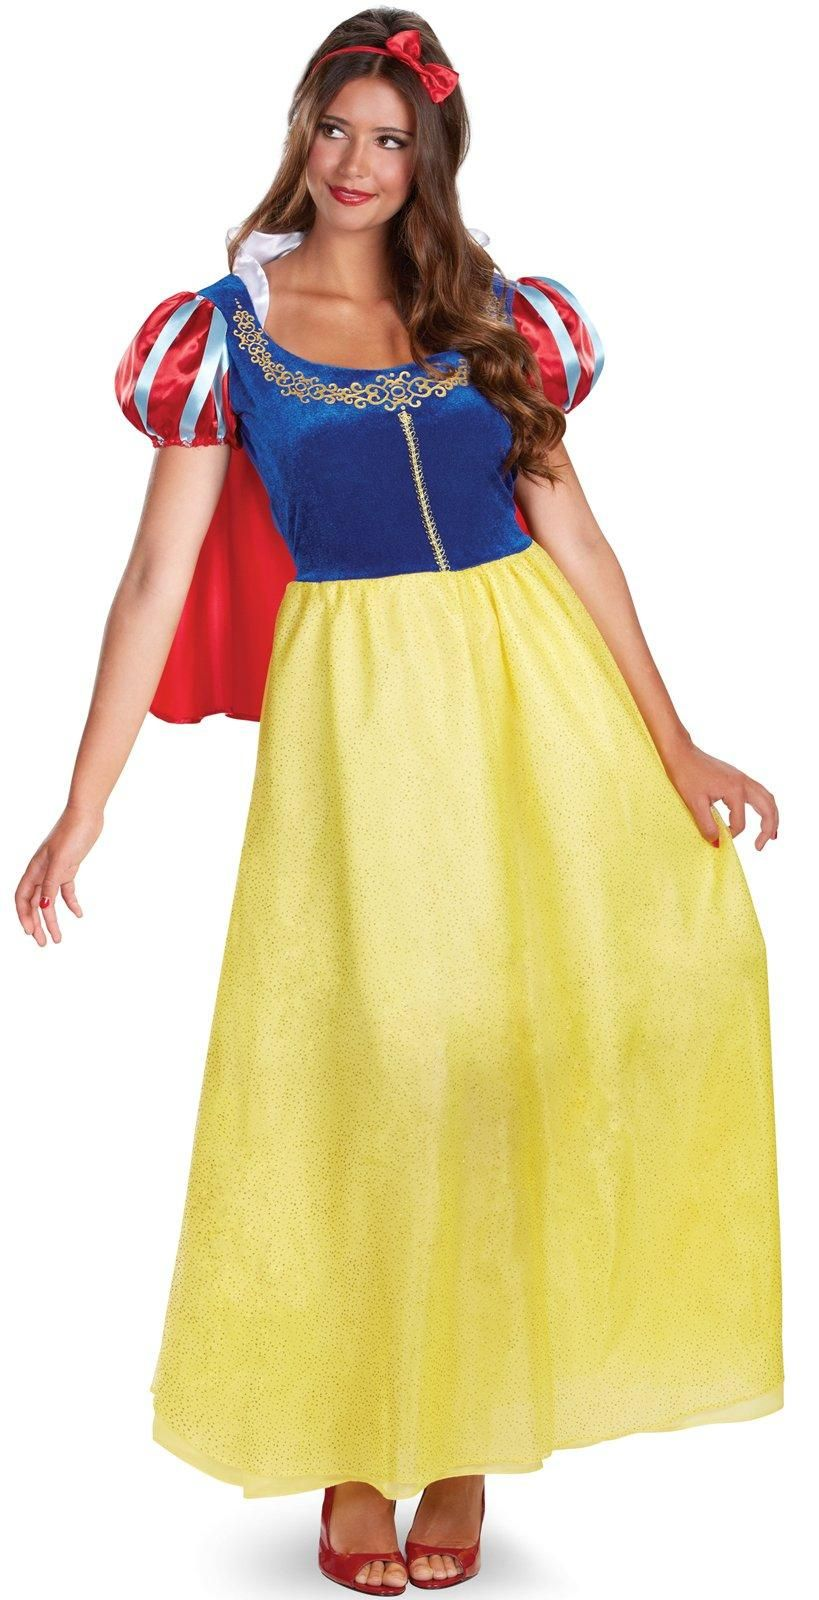 Disney Princess Snow White Deluxe Costume For Women from